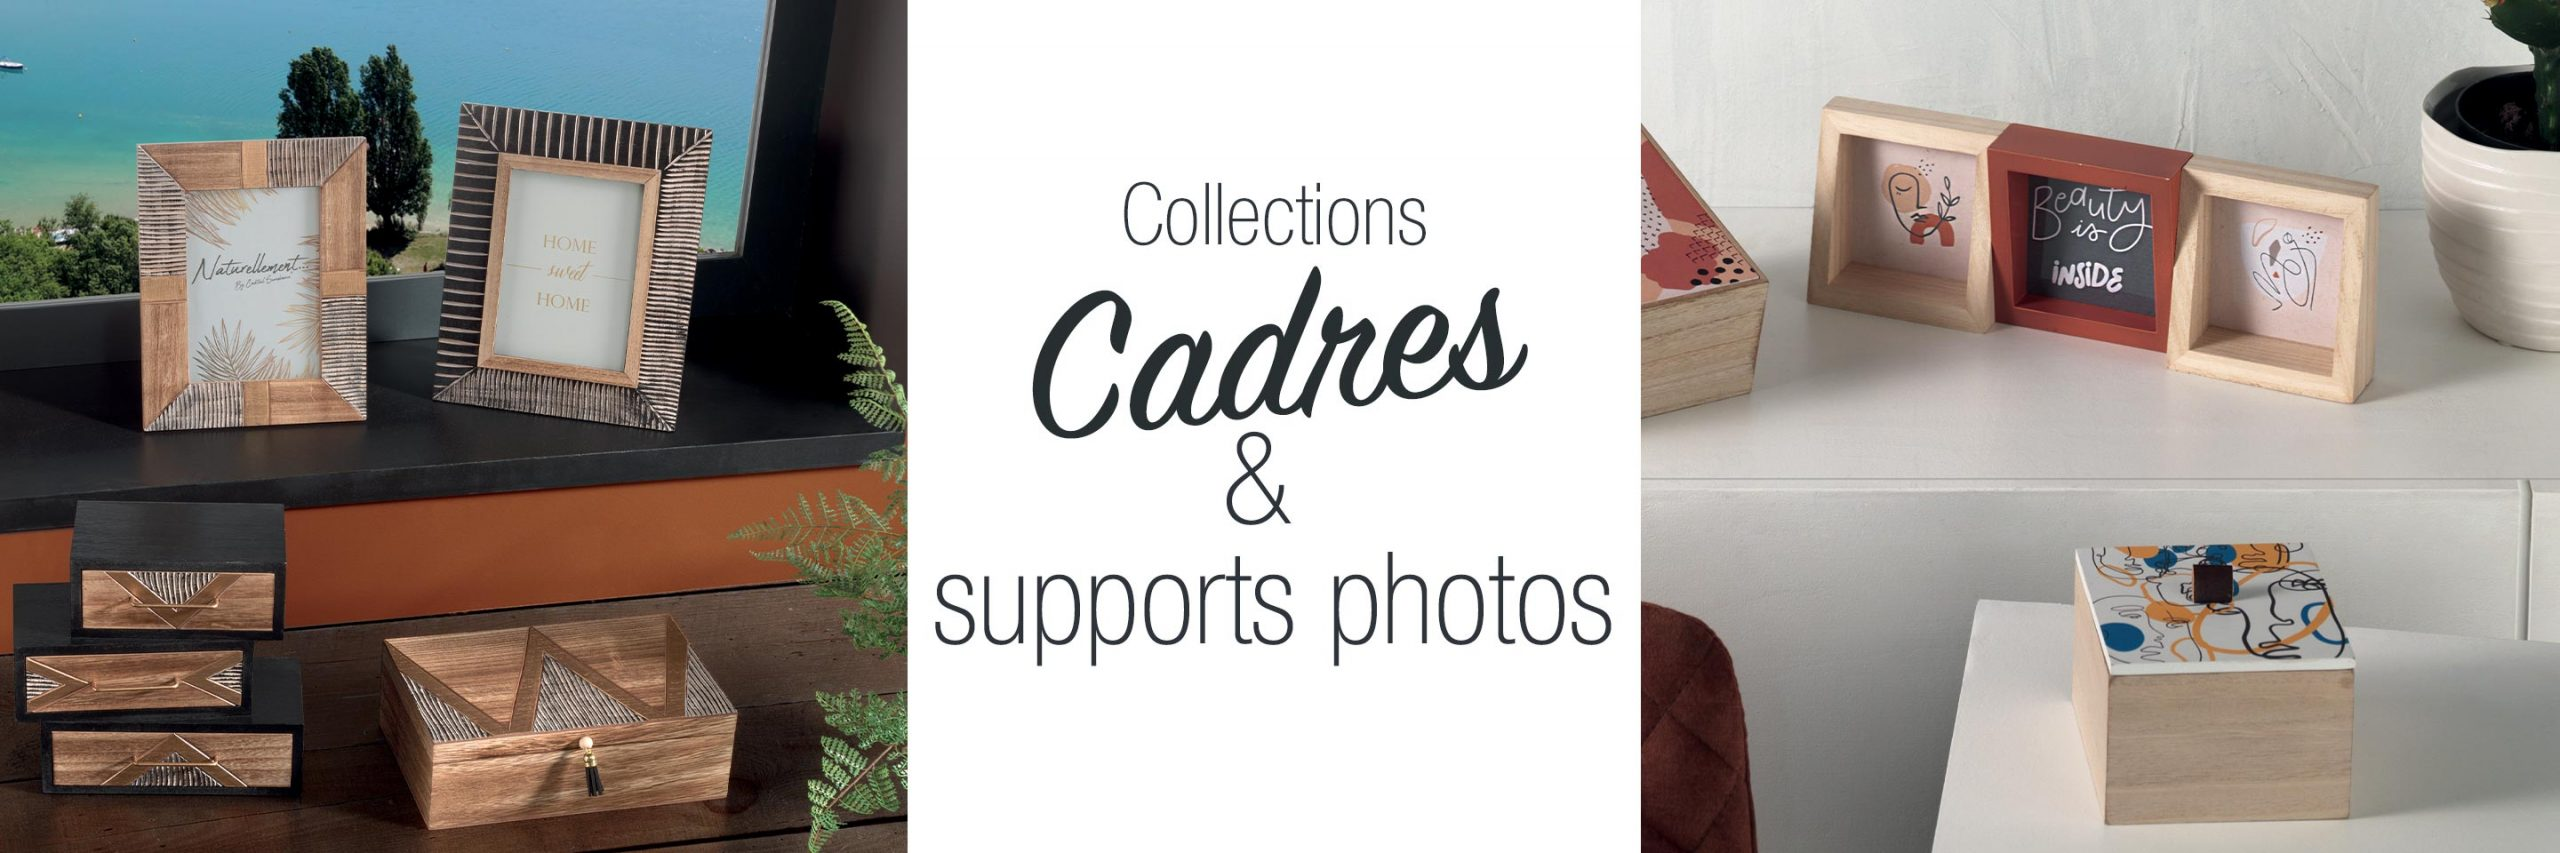 Cadres & supports photos